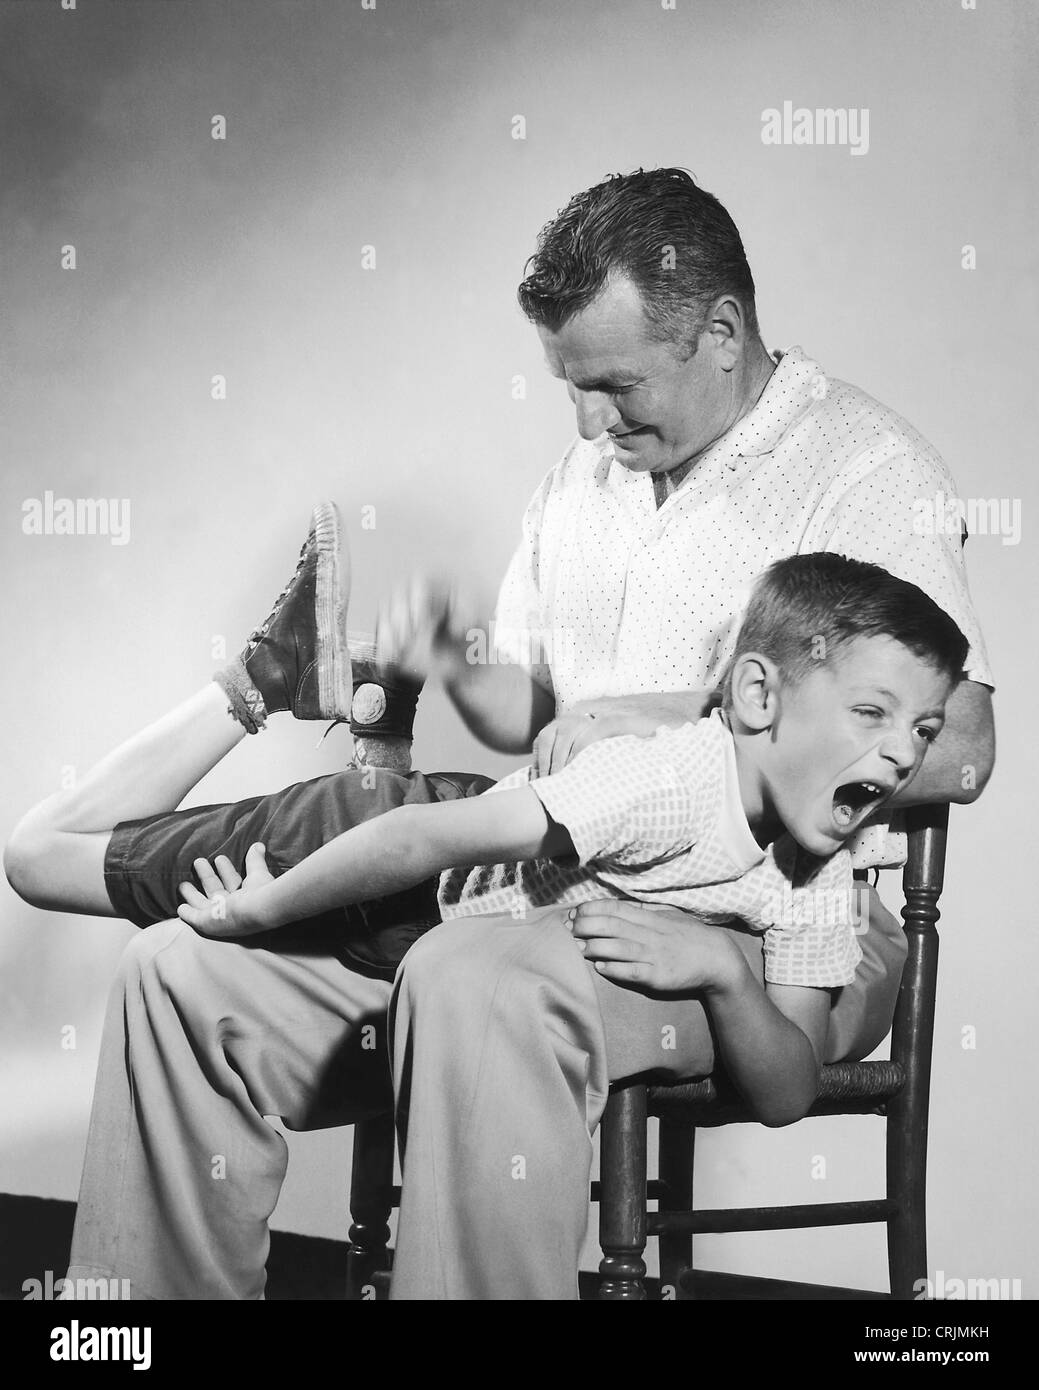 Father spanks naughty son - Stock Image